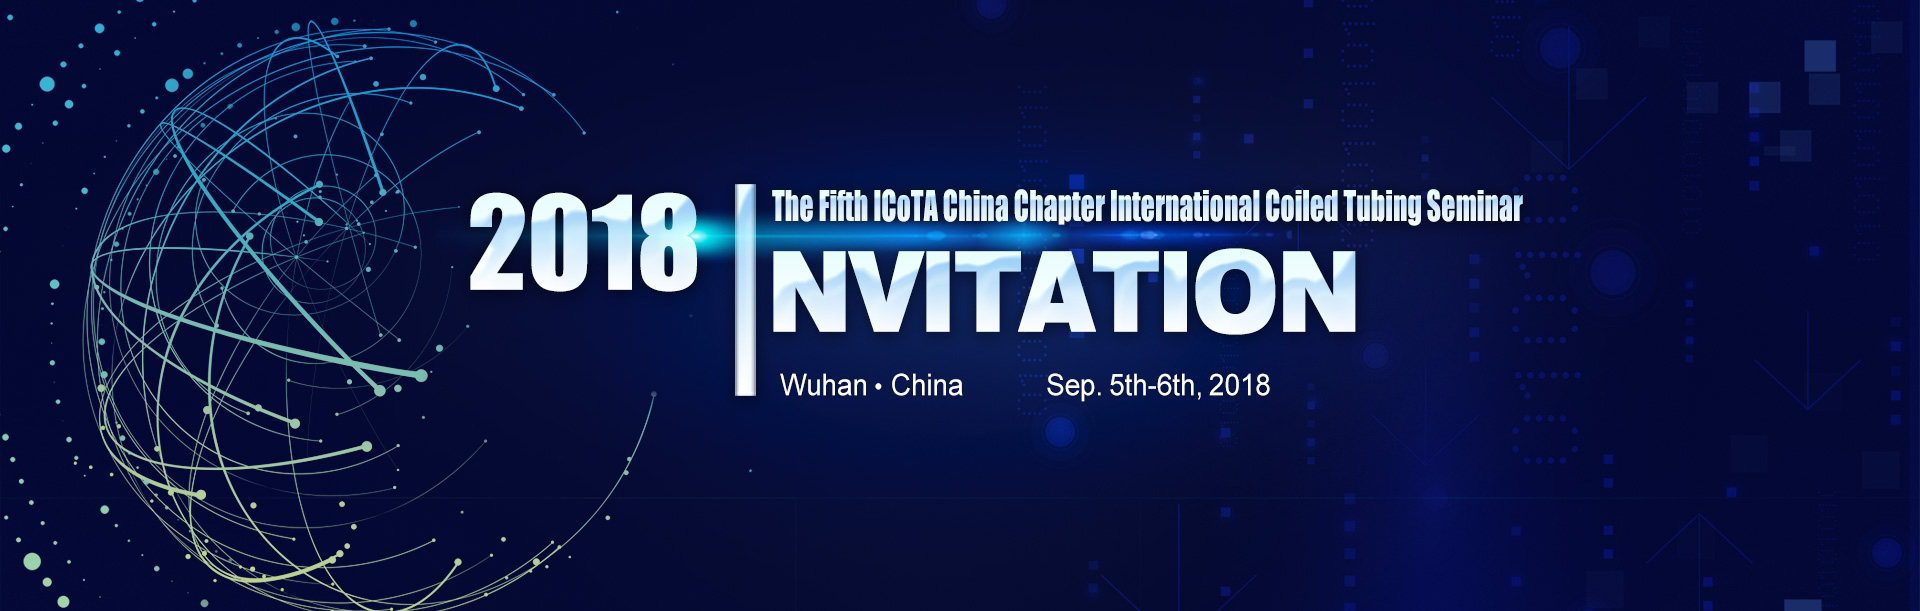 The Fifth ICoTA China Chapter International Coiled Tubing Seminar